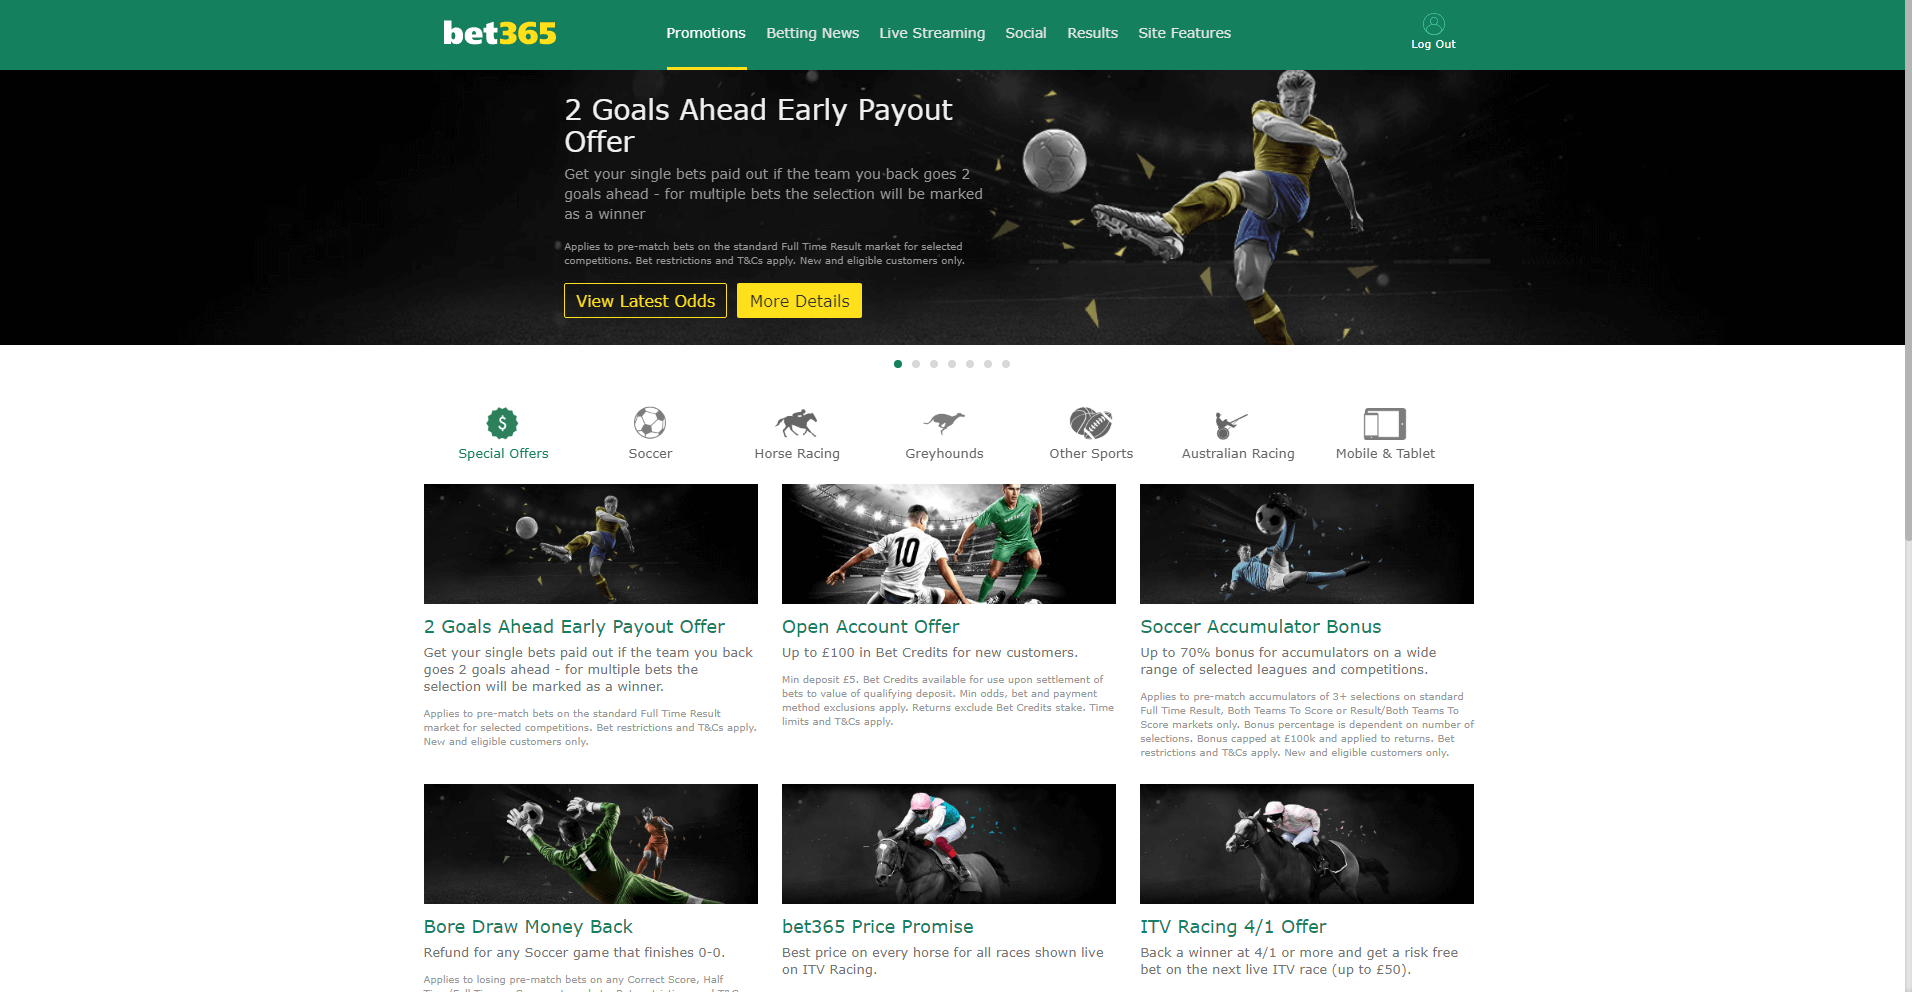 incredible promotions on the bet365 website